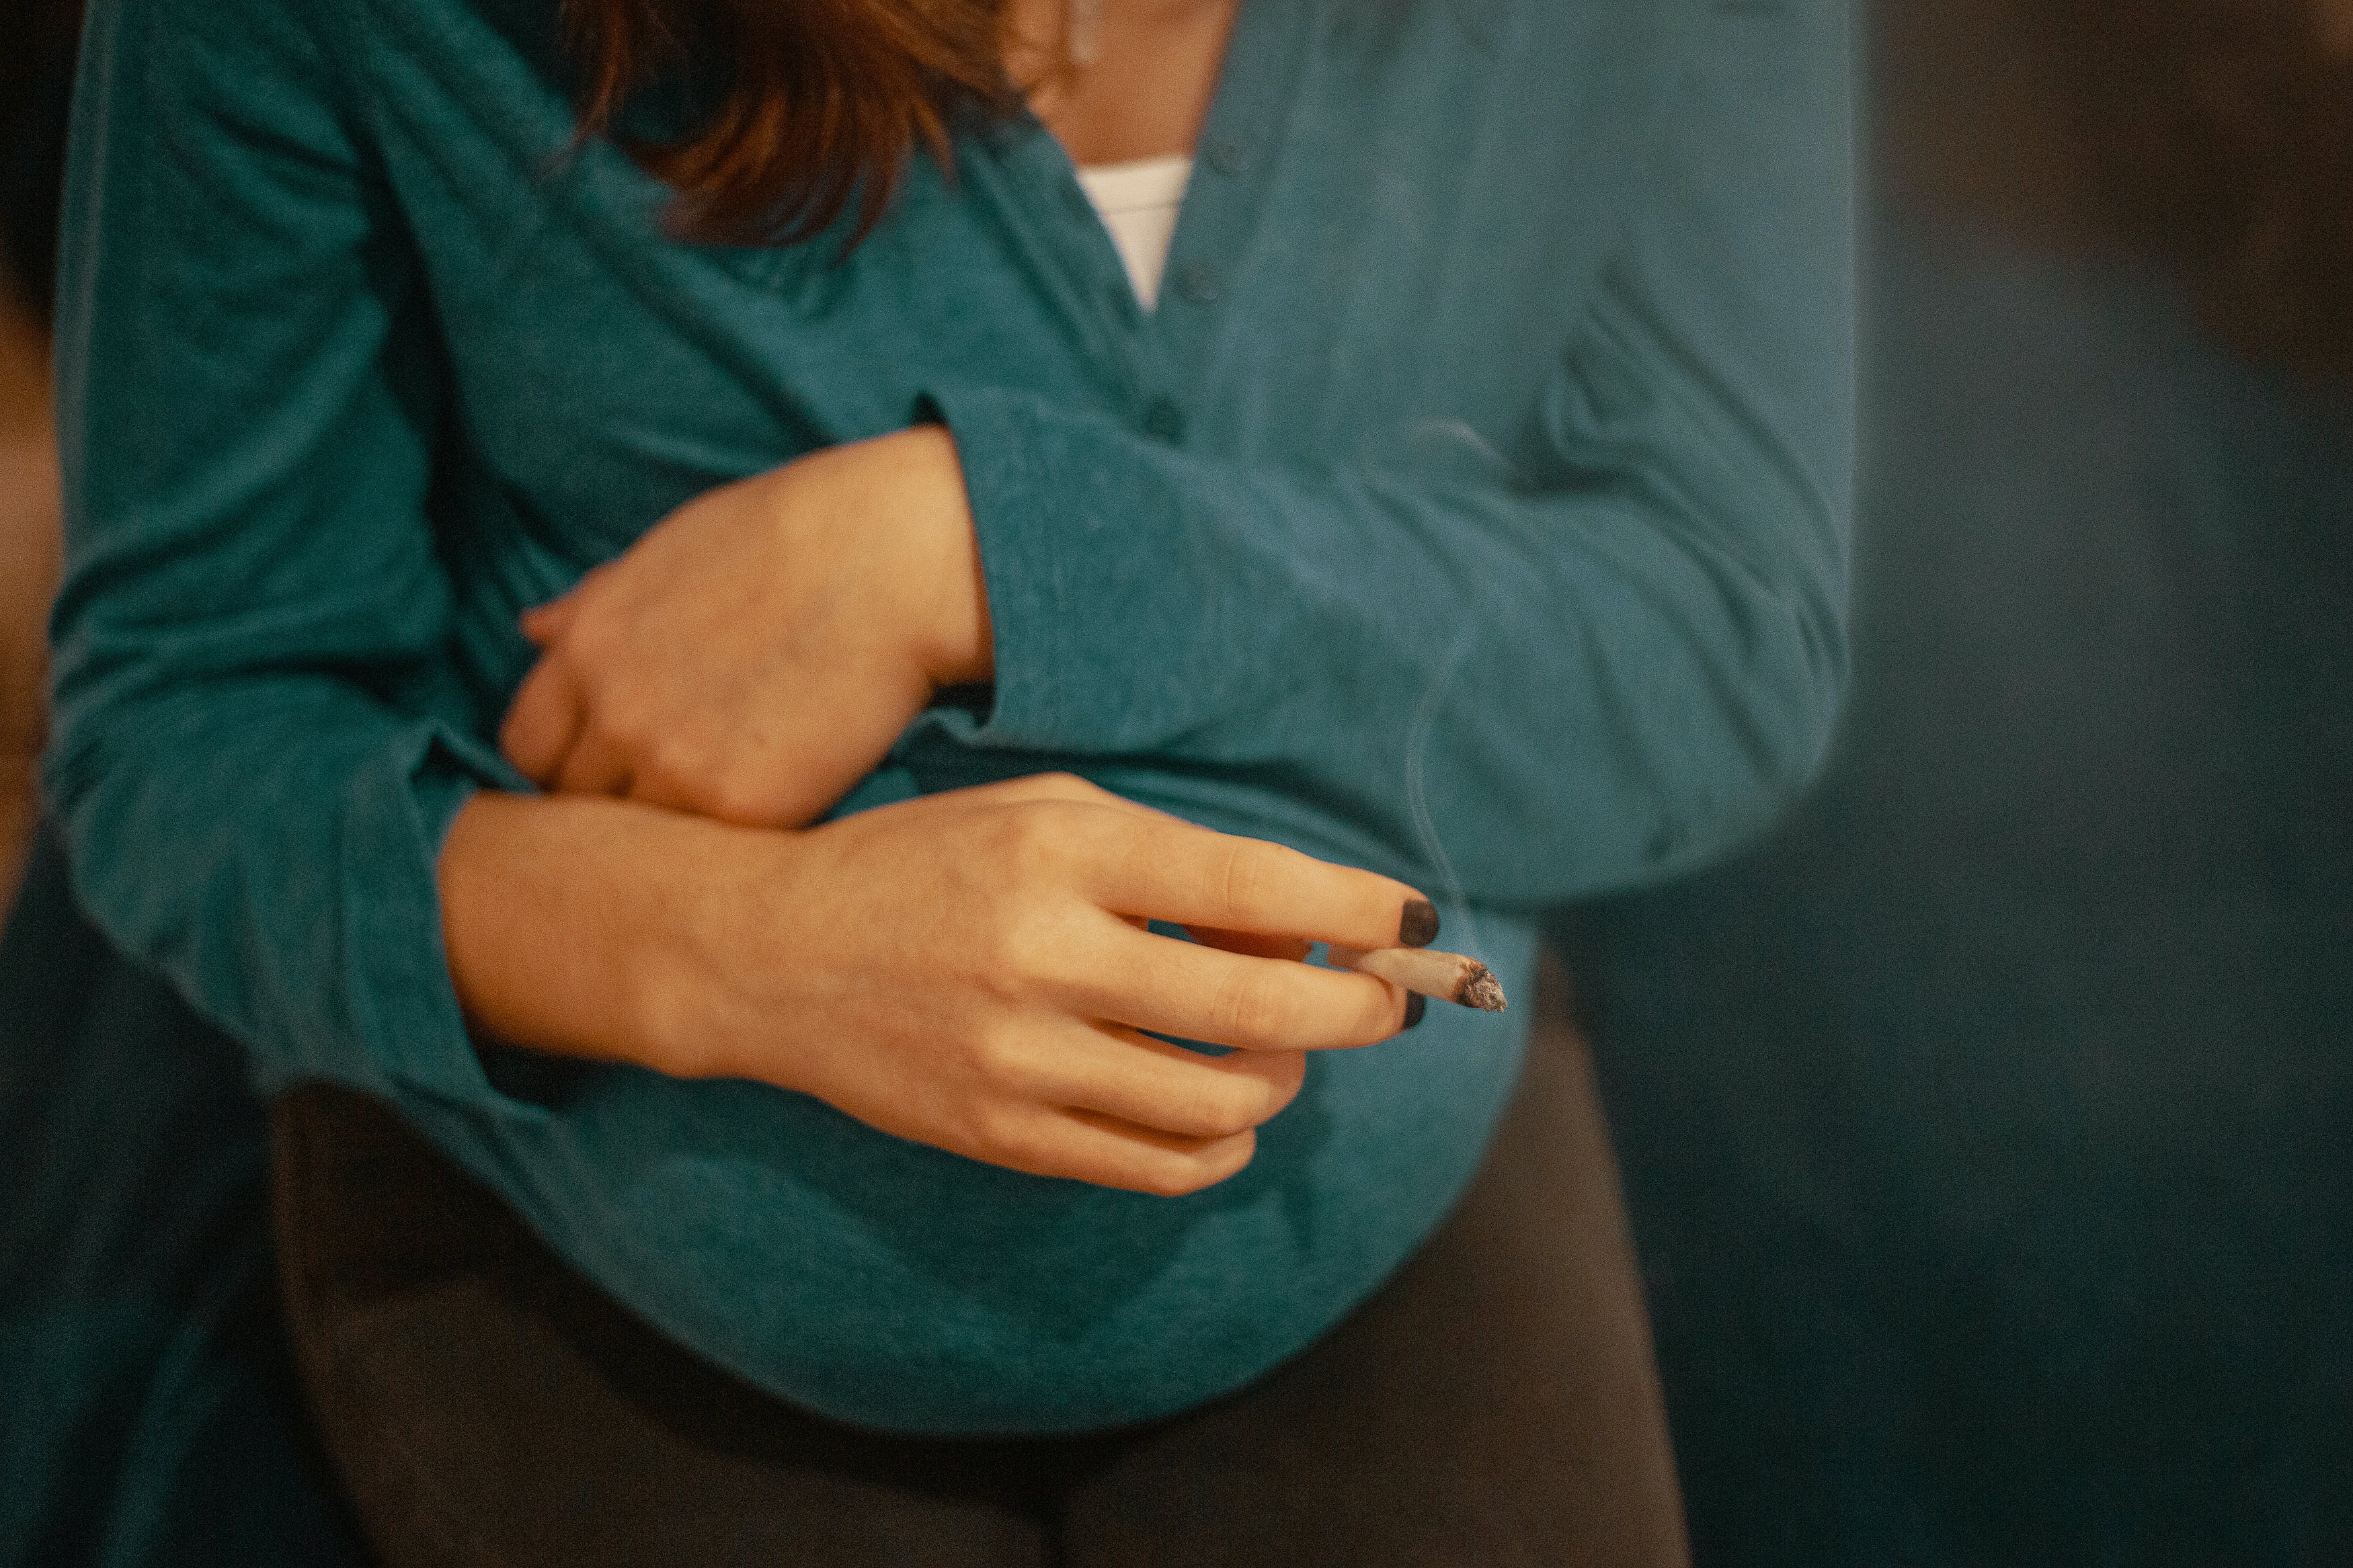 A woman holds a joint while crossing her hands over her pregnant stomach. Here's what you need to know about smoking weed during pregnancy